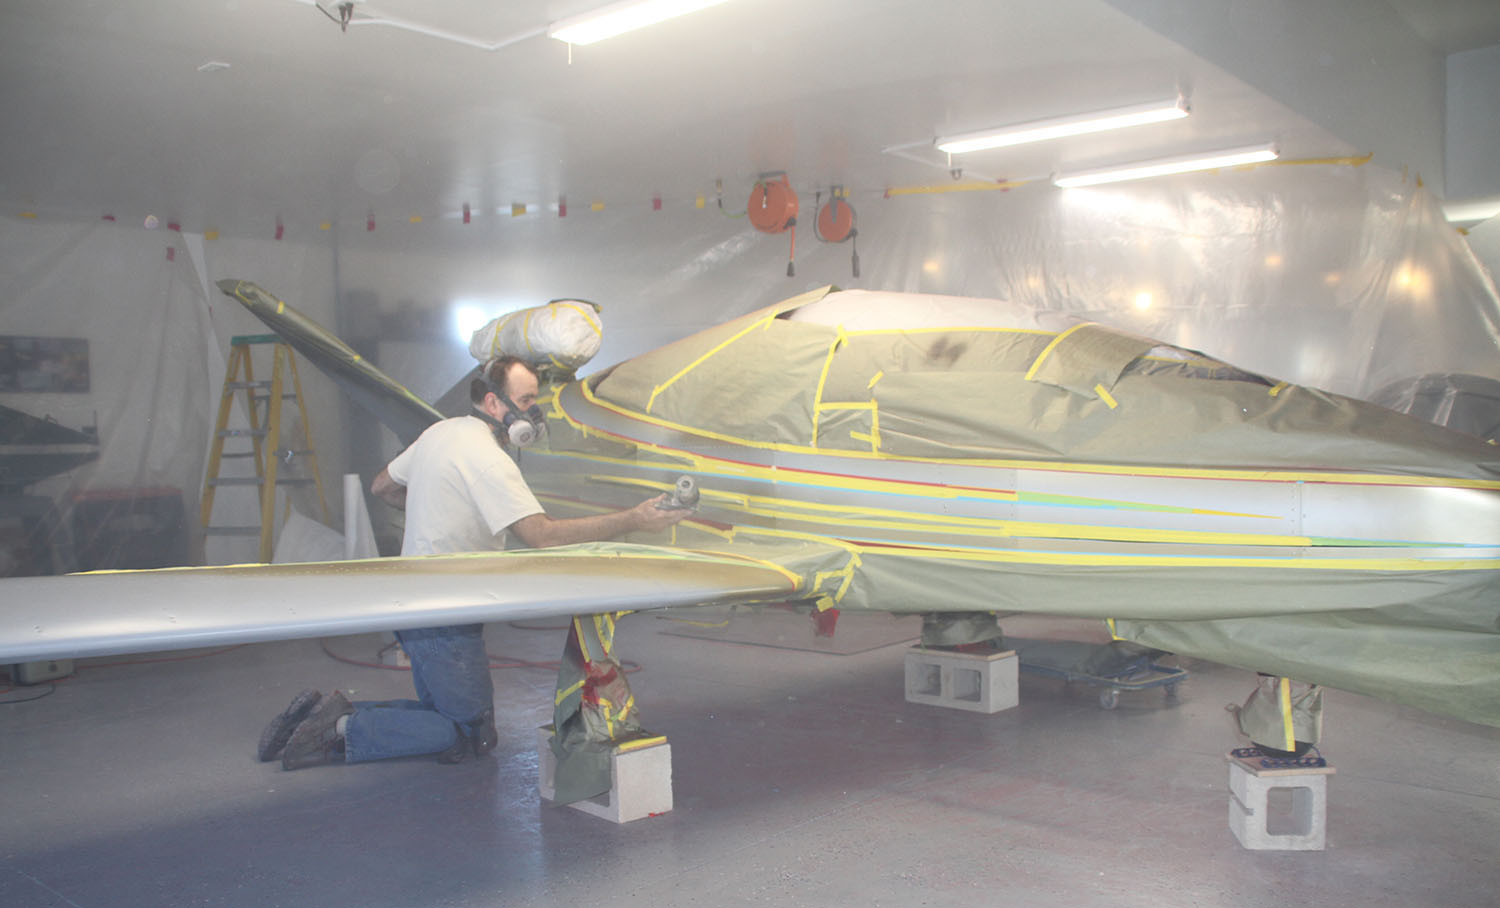 John Stahr sprays white paint as the final area paint on Paul Dye's SubSonex. Most of the jet is masked to protect the earlier laid colors.